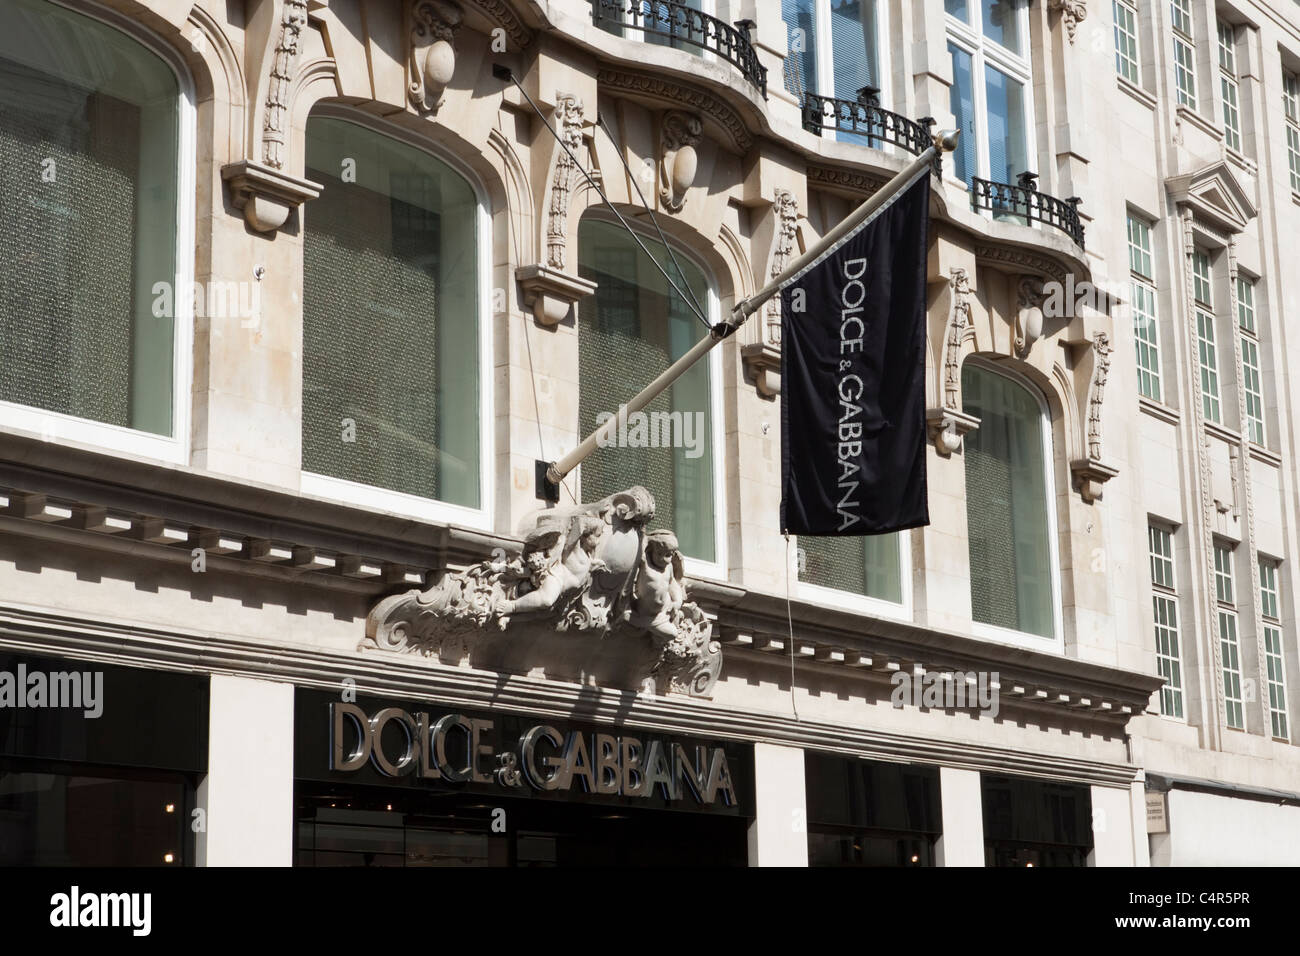 Dolce & Gabbana store/shop front, Old Bond Street, London, England - Stock Image